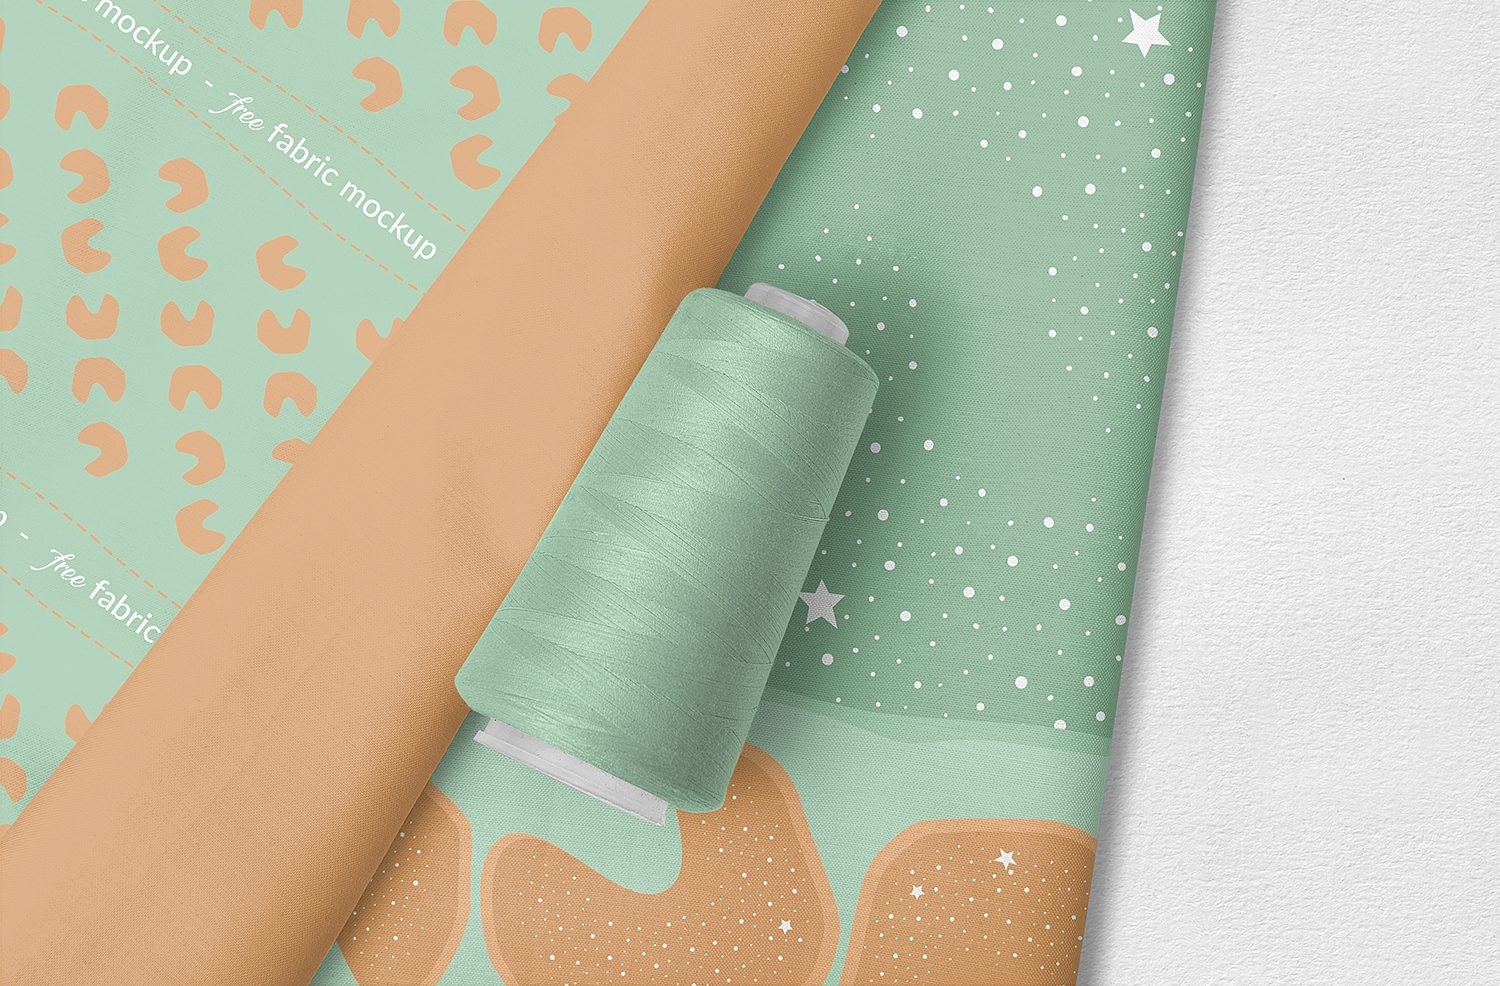 Free Photorealistic Fabric Mockup